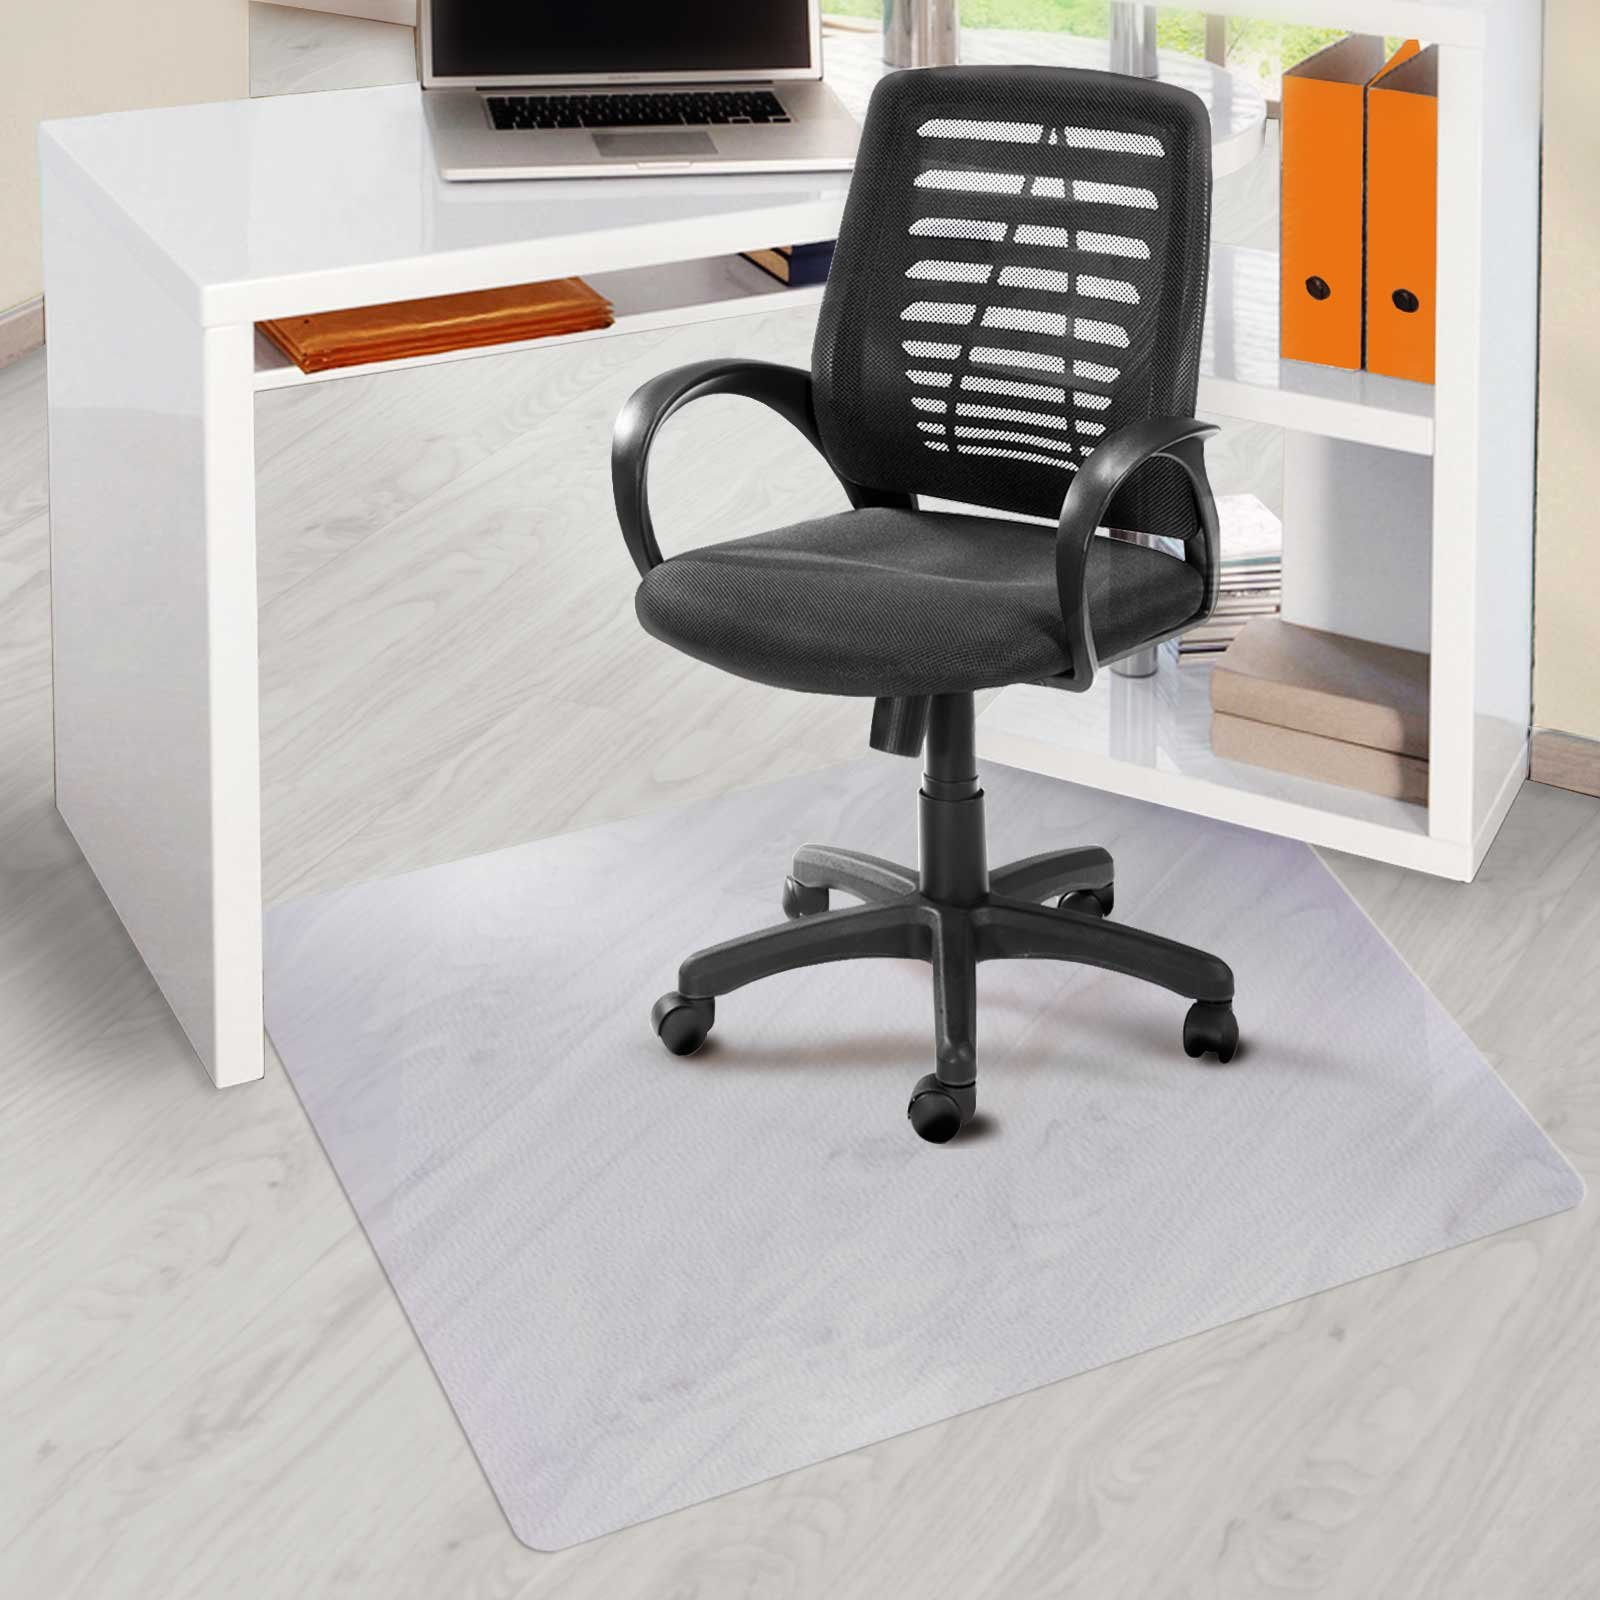 Cheap Vinyl Office Chair Find Vinyl Office Chair Deals On Line At